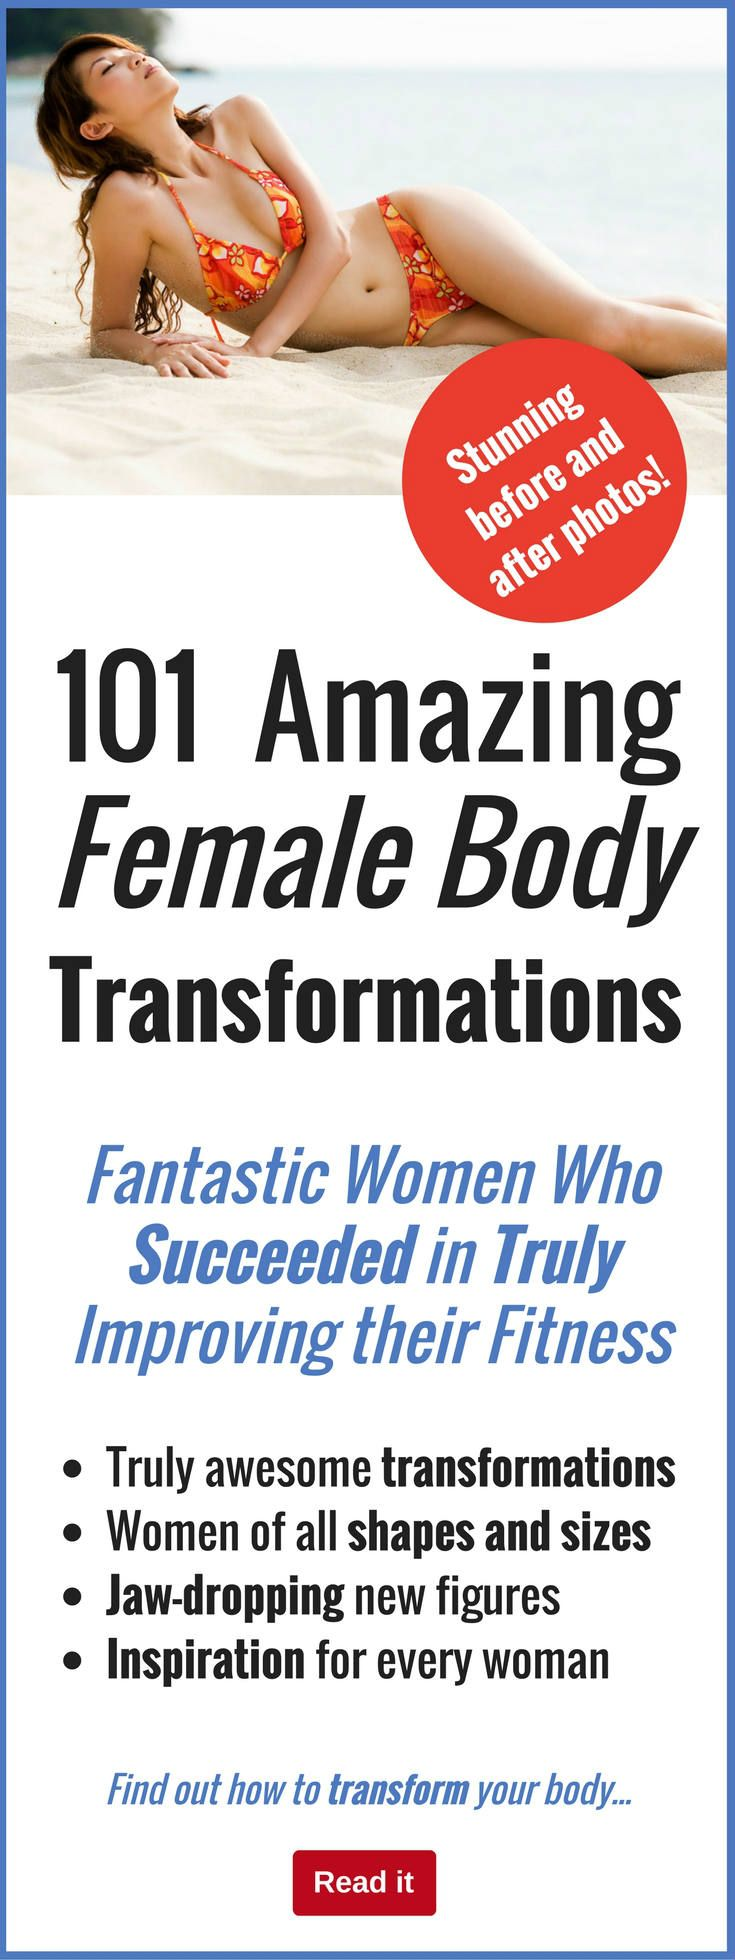 We all know the principles of losing weight and getting fit. You just find a good diet and exercise plan and stick to it, right? If only if it was that easy! You need willpower, motivation and resolve to make it all happen. Otherwise you just end up skipping your workout and ordering a takeout pizza with extra cheese instead. See how these amazing women overcame temptation to achieve amazing body transformations.